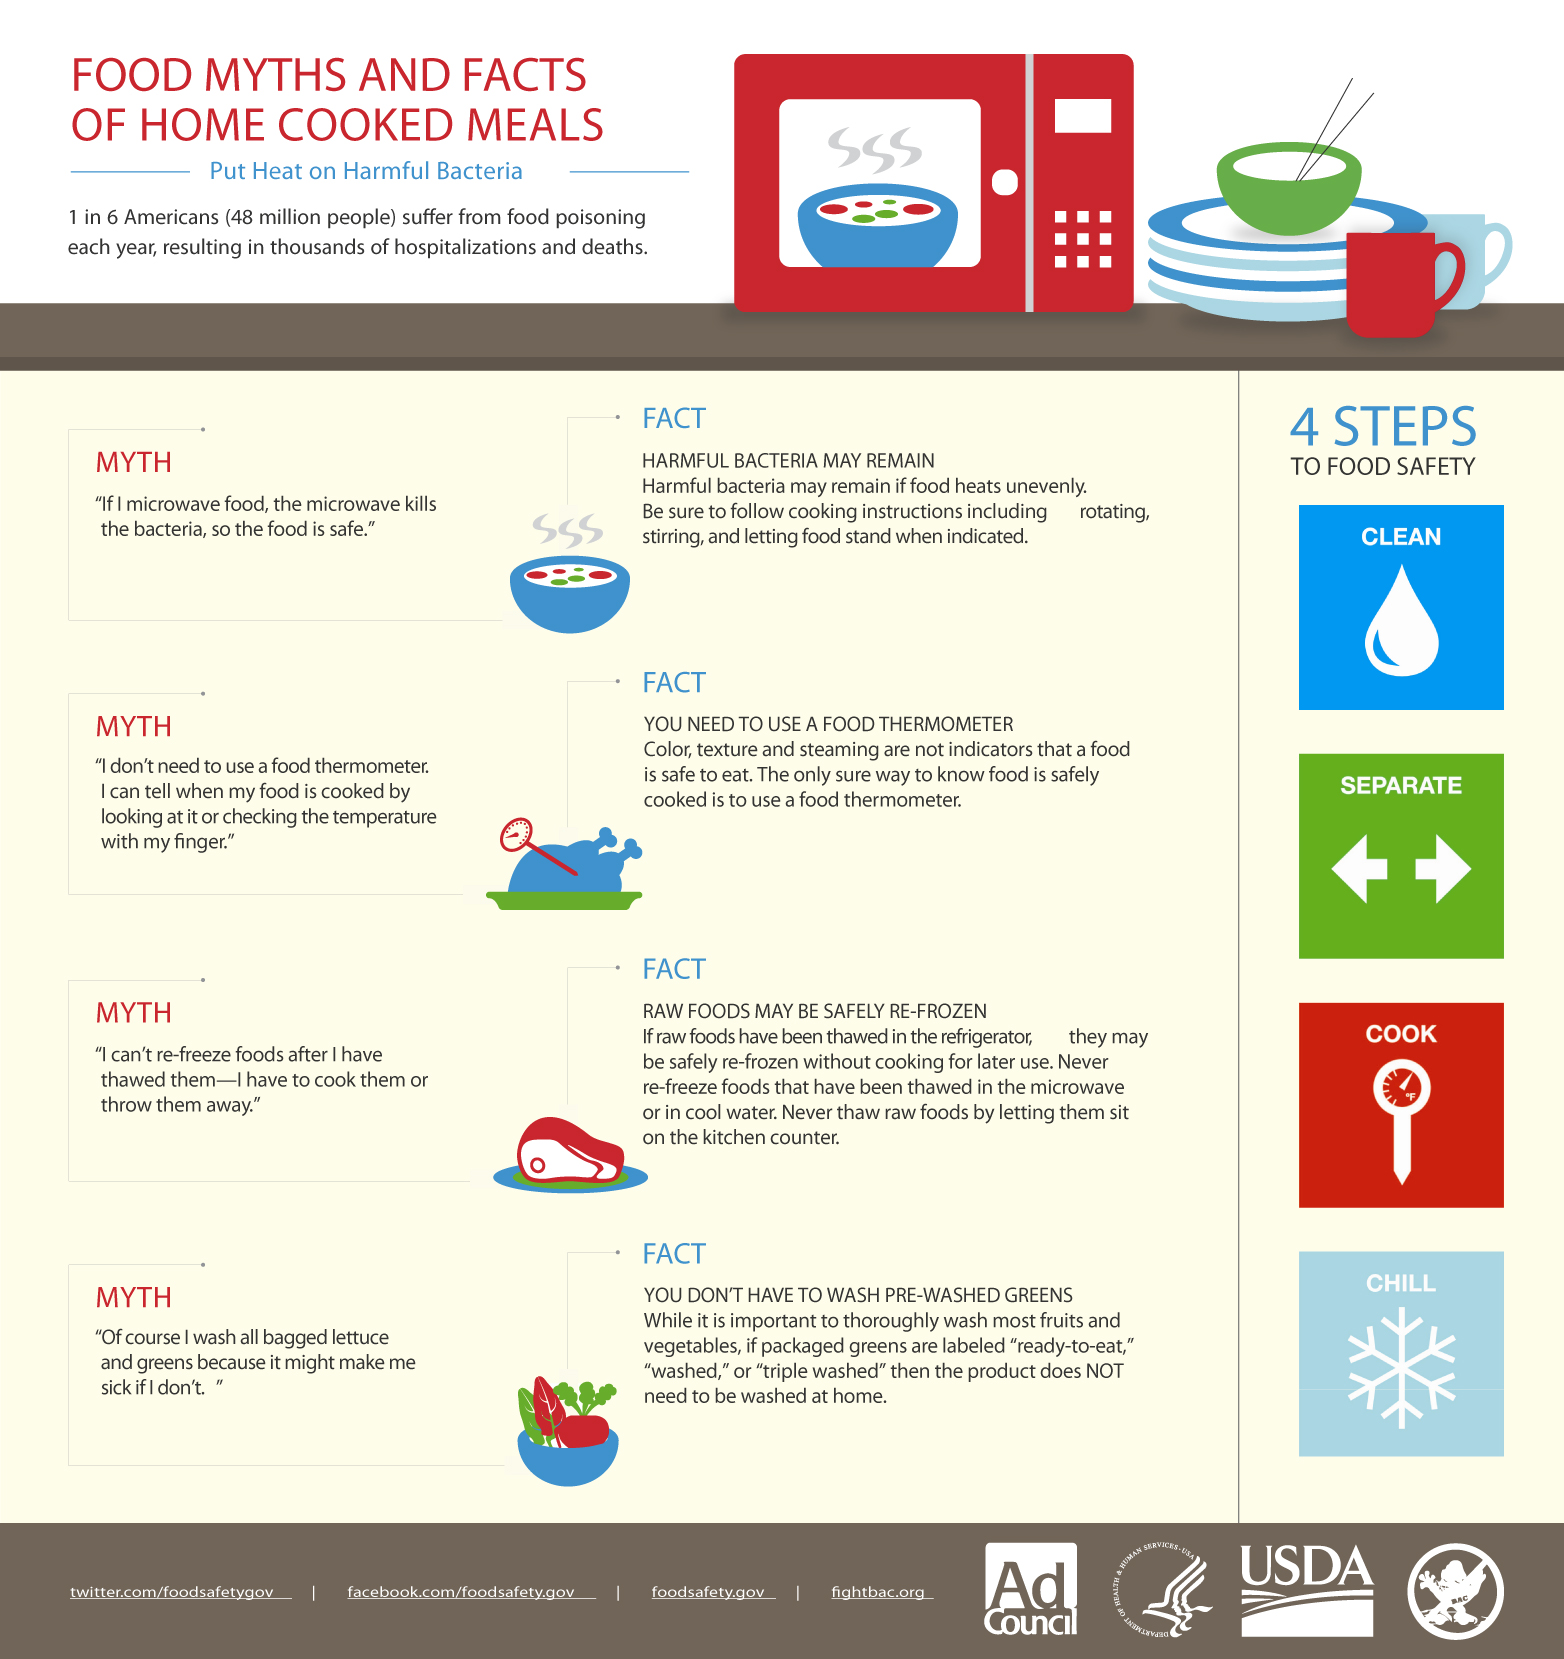 http://elementassociates.com/wp-content/uploads/2012/09/Infographic-False-Food-Myths-blogsize.jpg